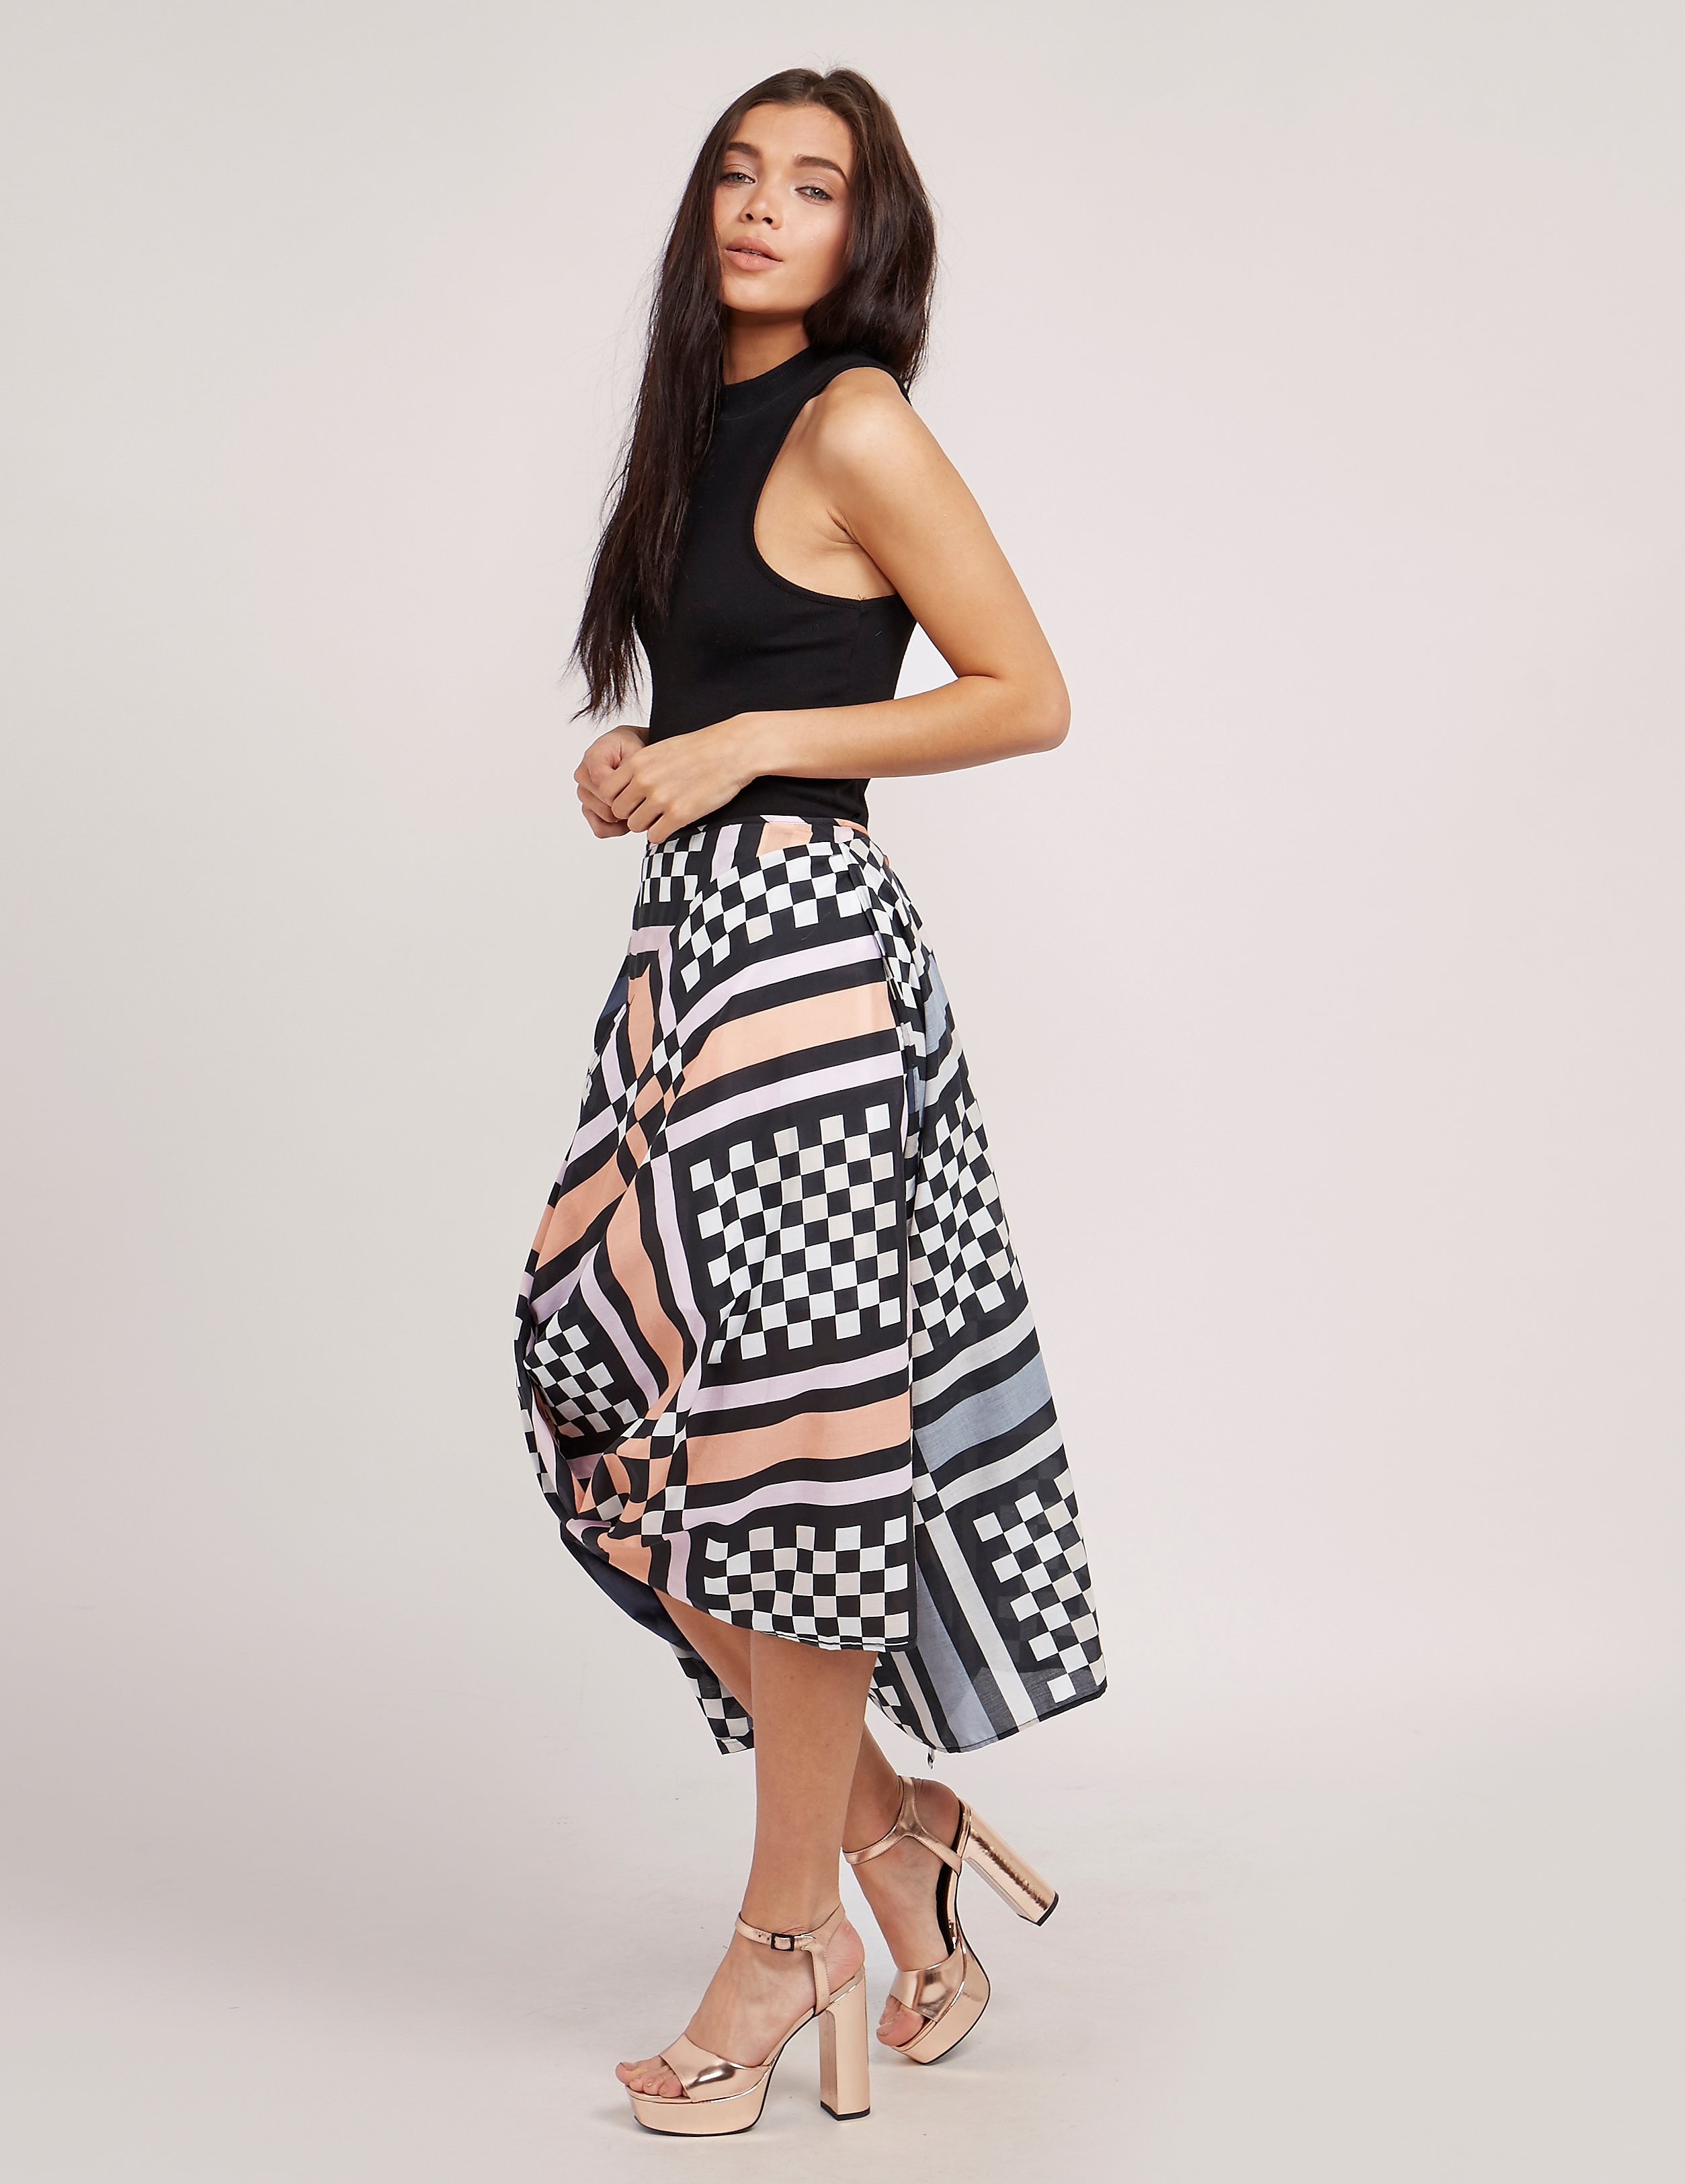 Vivienne Westwood Anglomania Eight Nomad Skirt